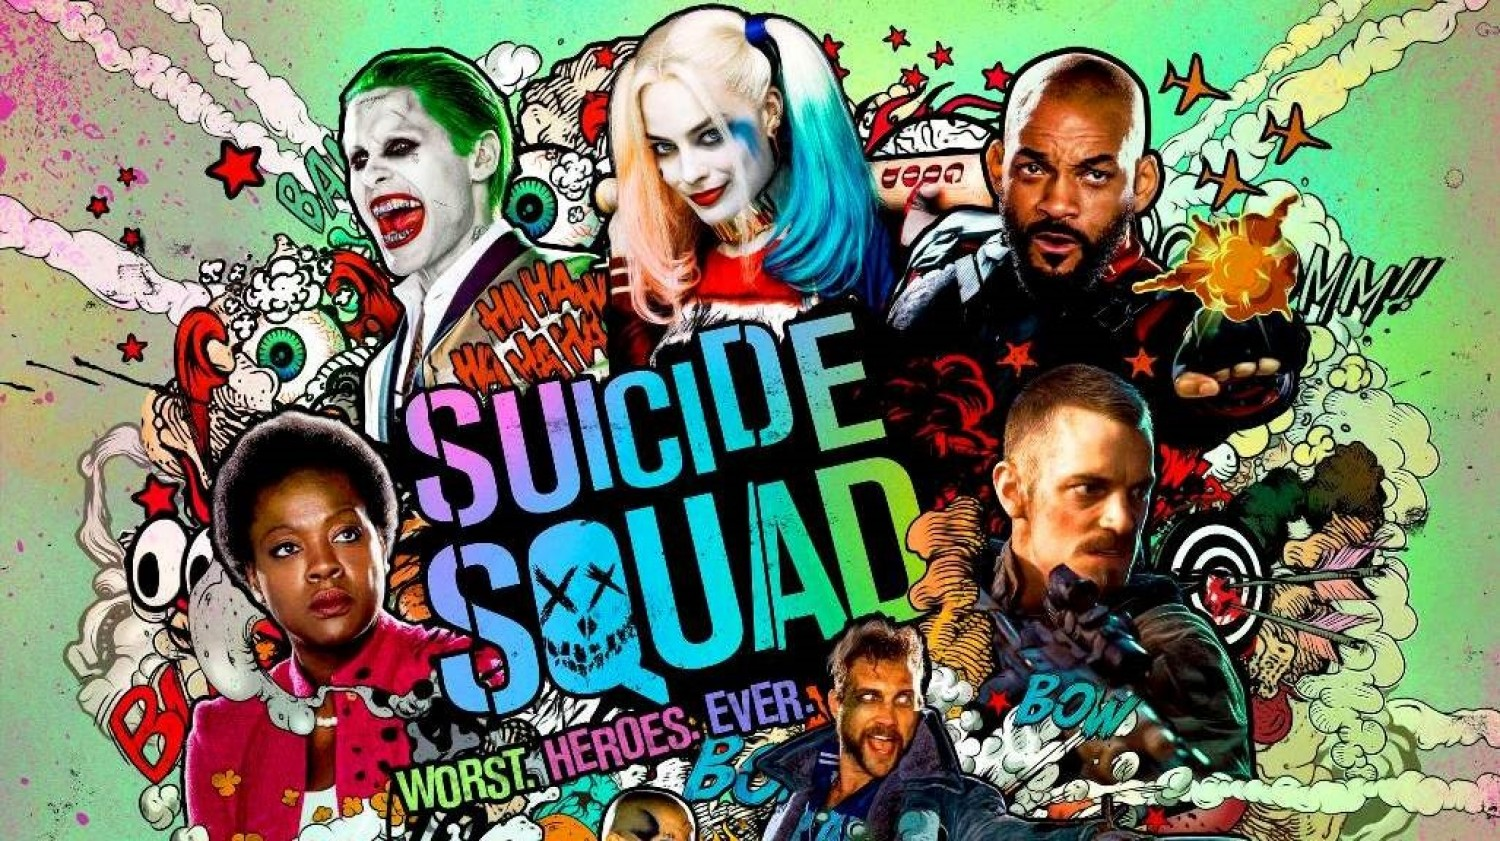 Suicide Squad (2016) David Ayer - Movie Review